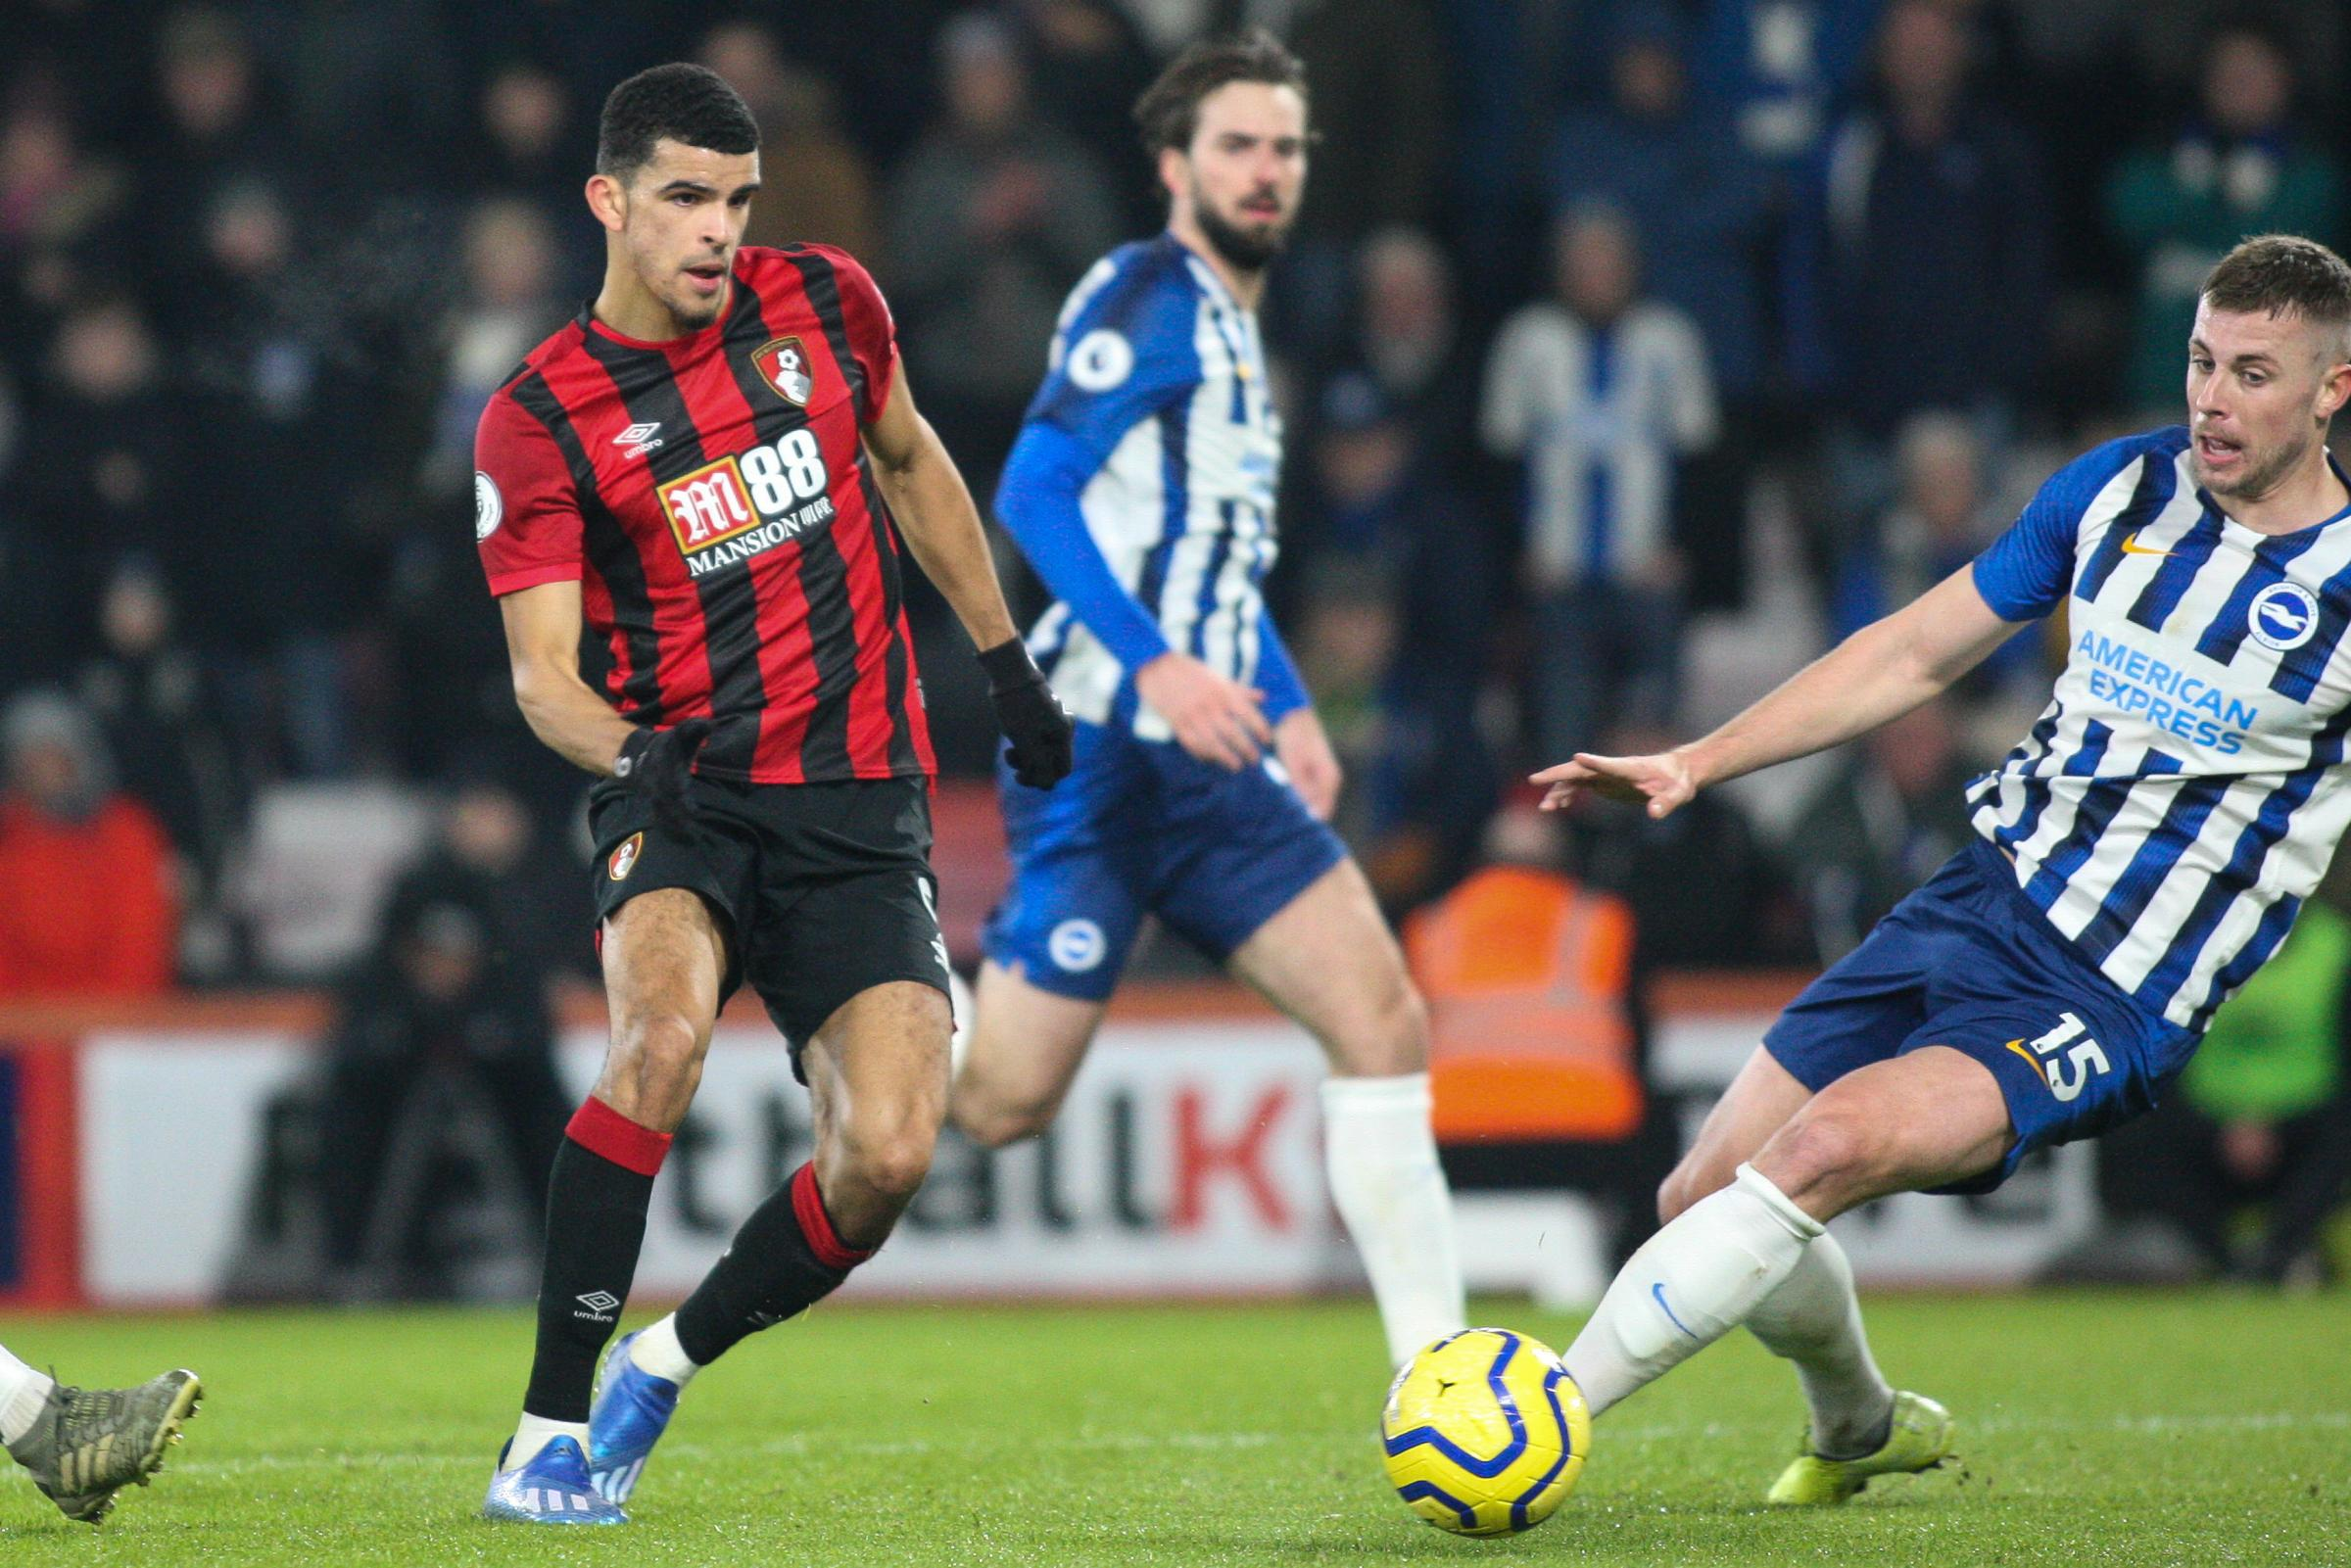 Scoring first was the 'key thing' to victory, says AFC Bournemouth striker Dominic Solanke